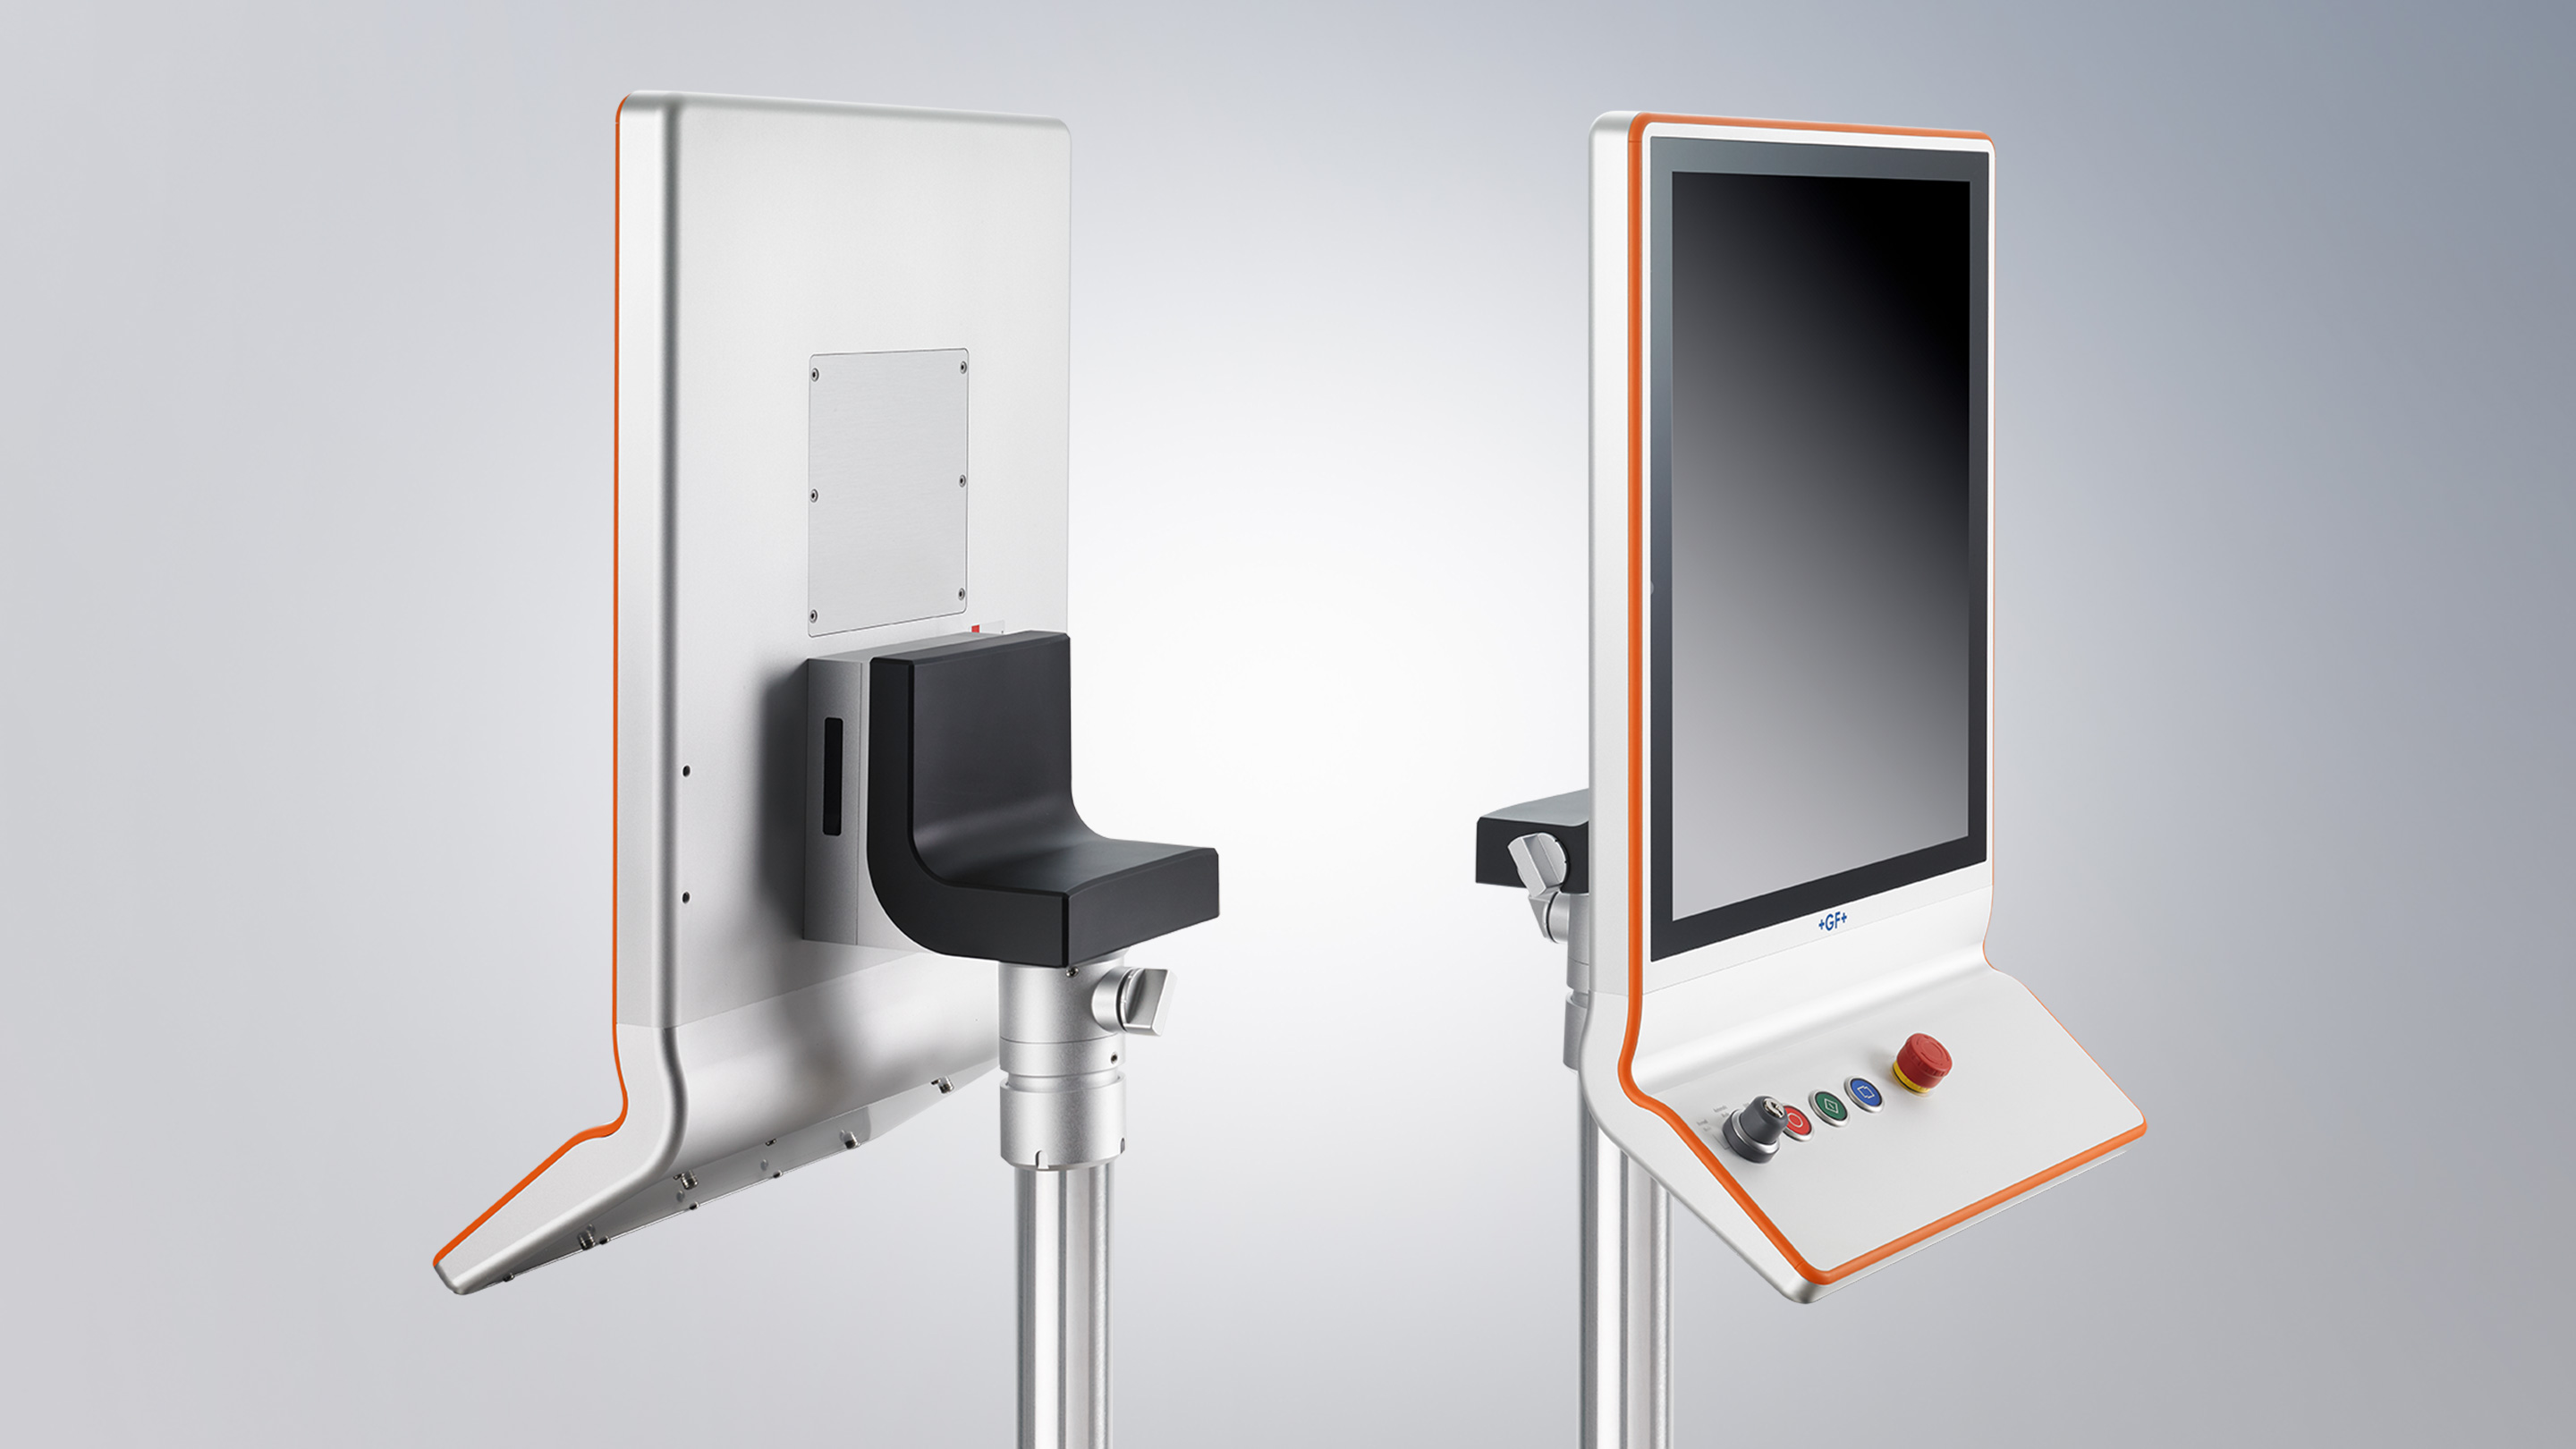 19-inch 5:4 display in aluminum housing with orange piping and ergonomically shaped push-button extension, adapted to the corporate design